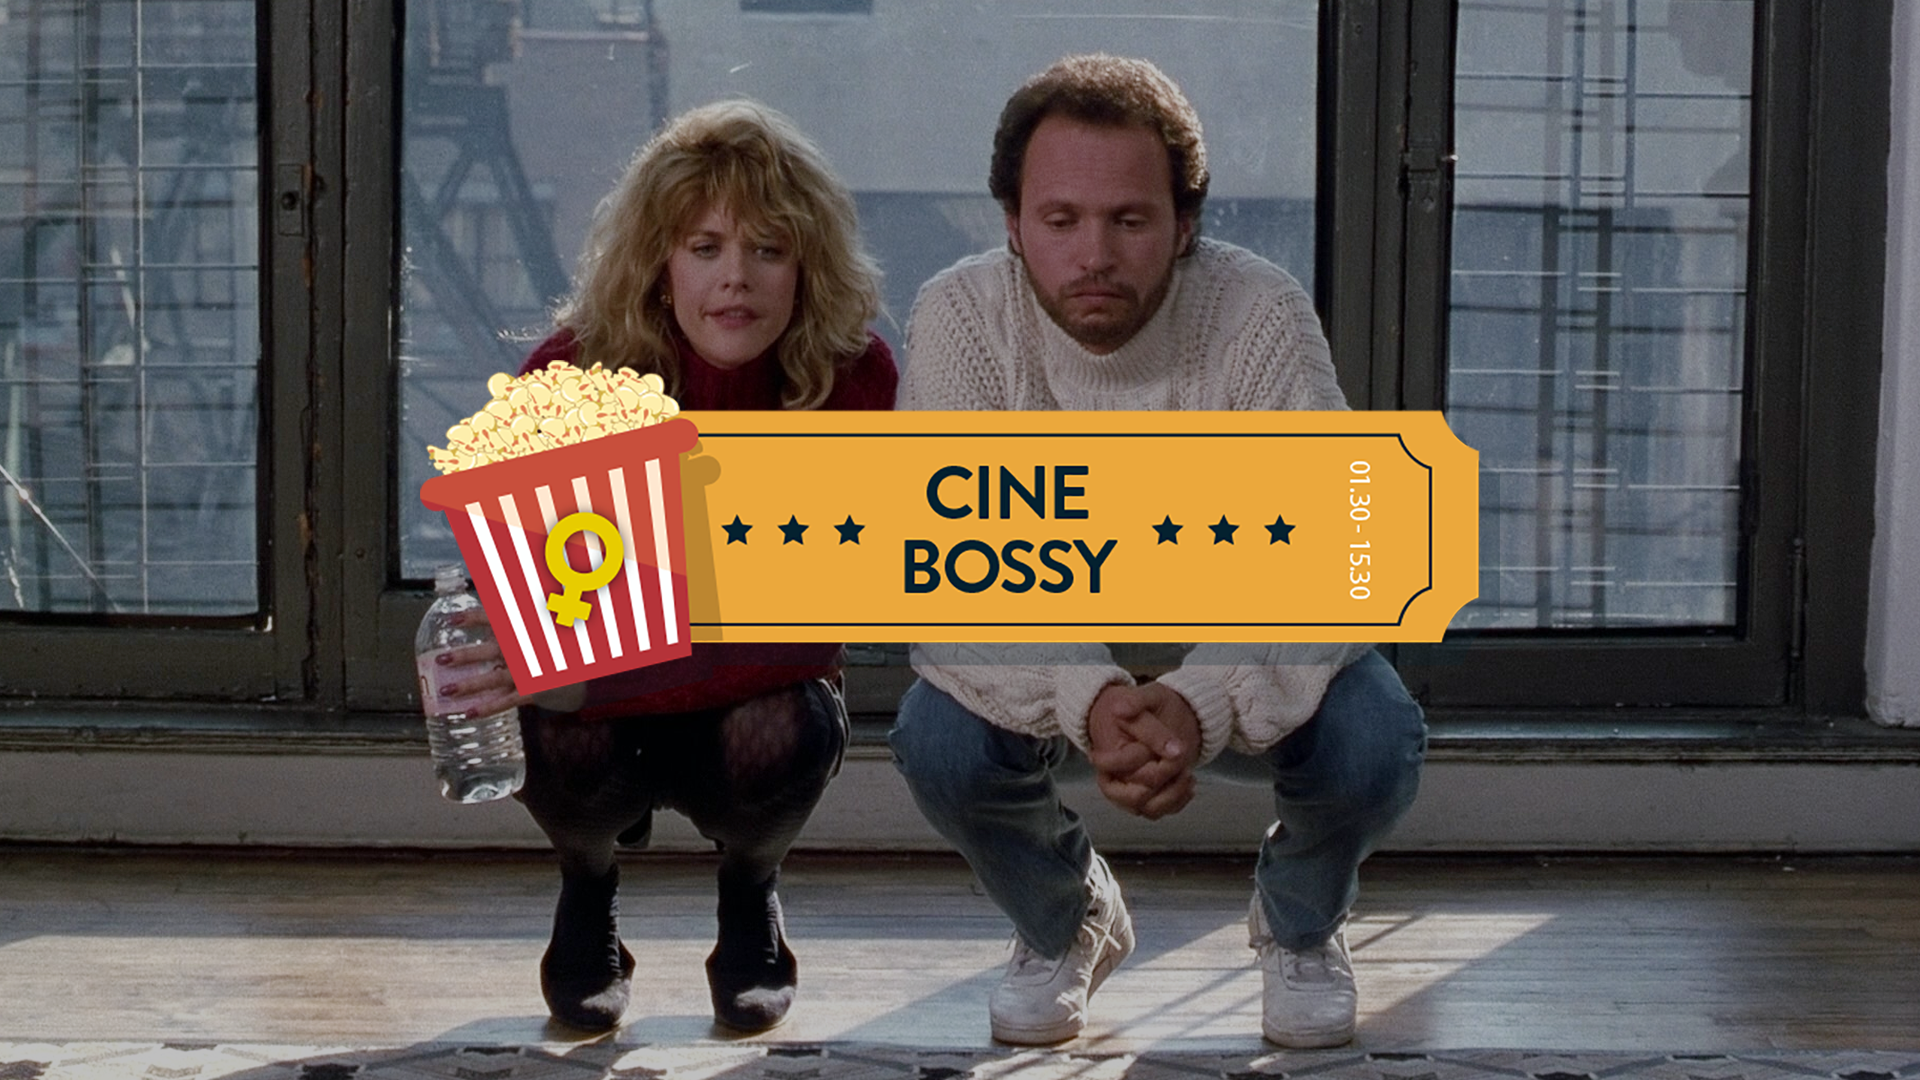 Cinebossy #05 – Harry ti presento Sally